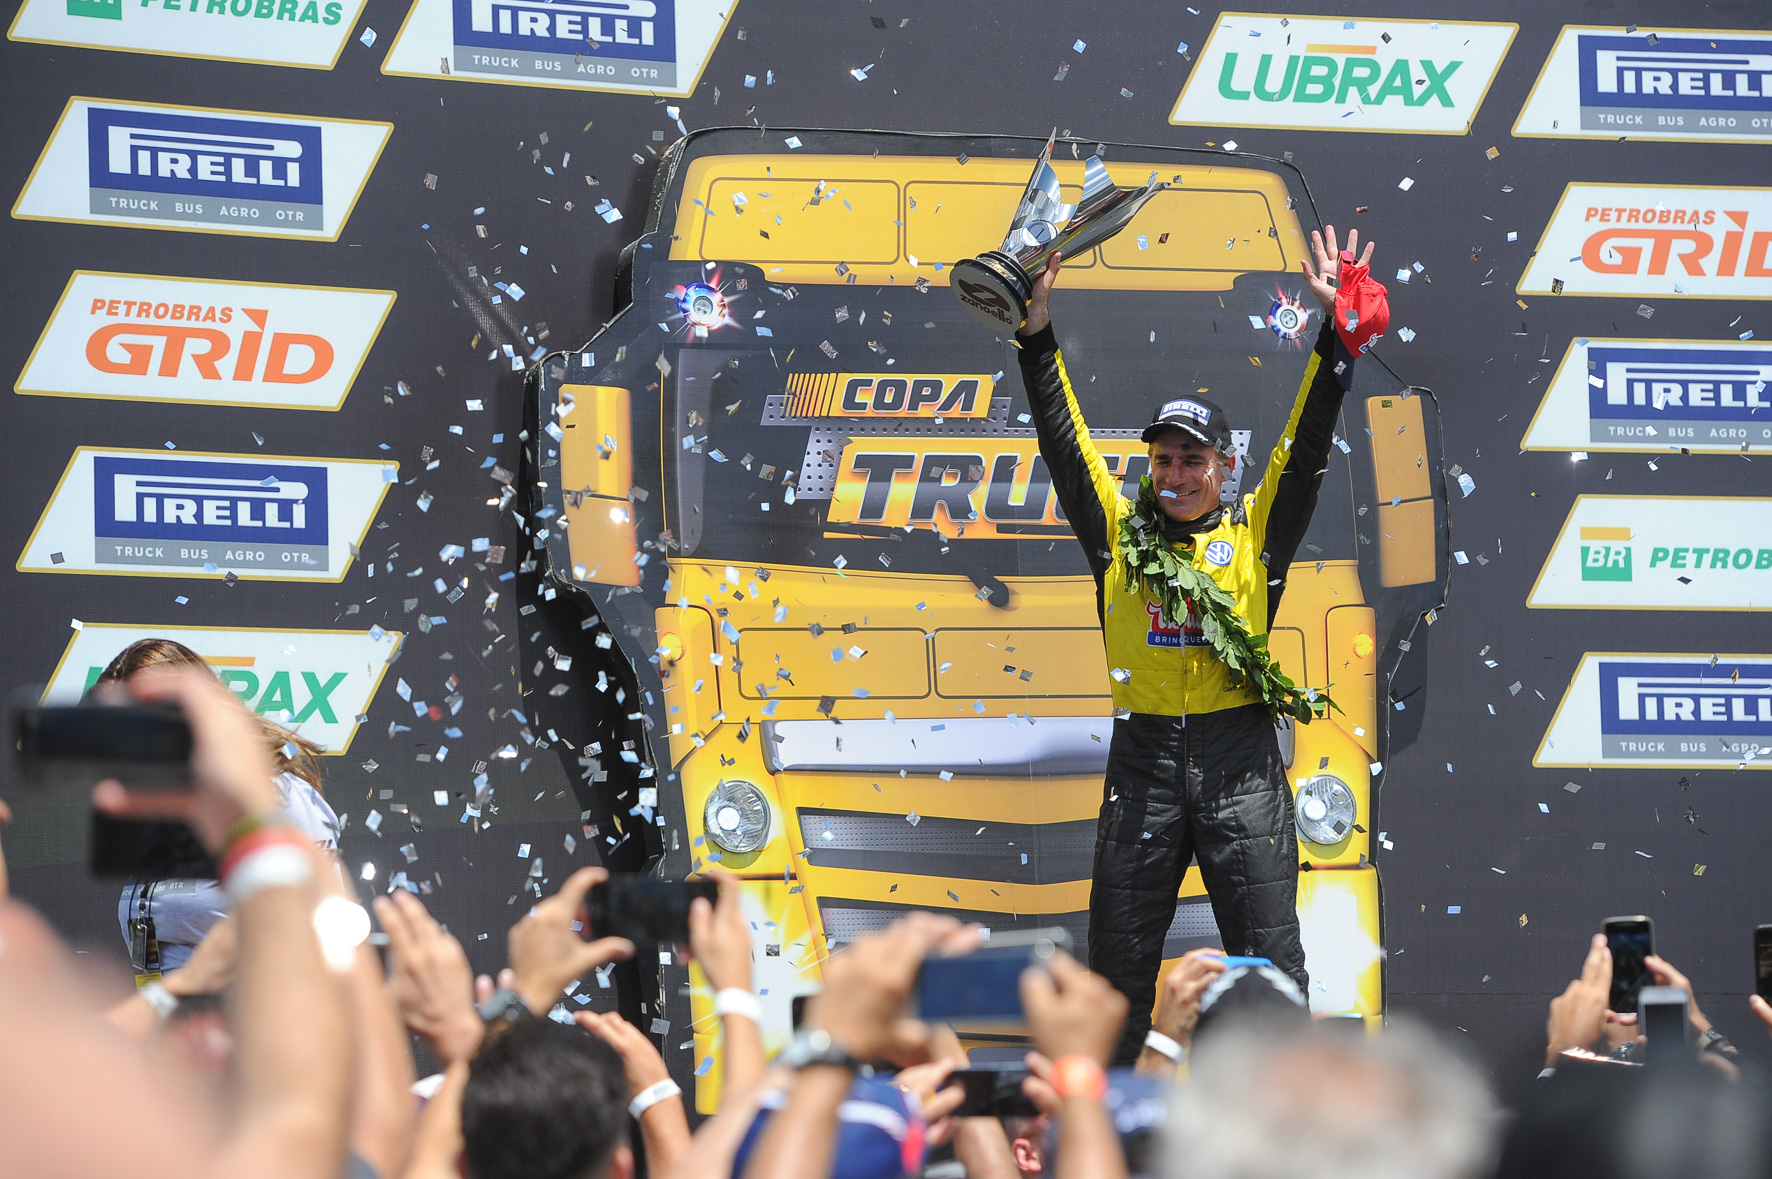 Photo of Copa Truck – Giaffone é o grande campeão de 2017